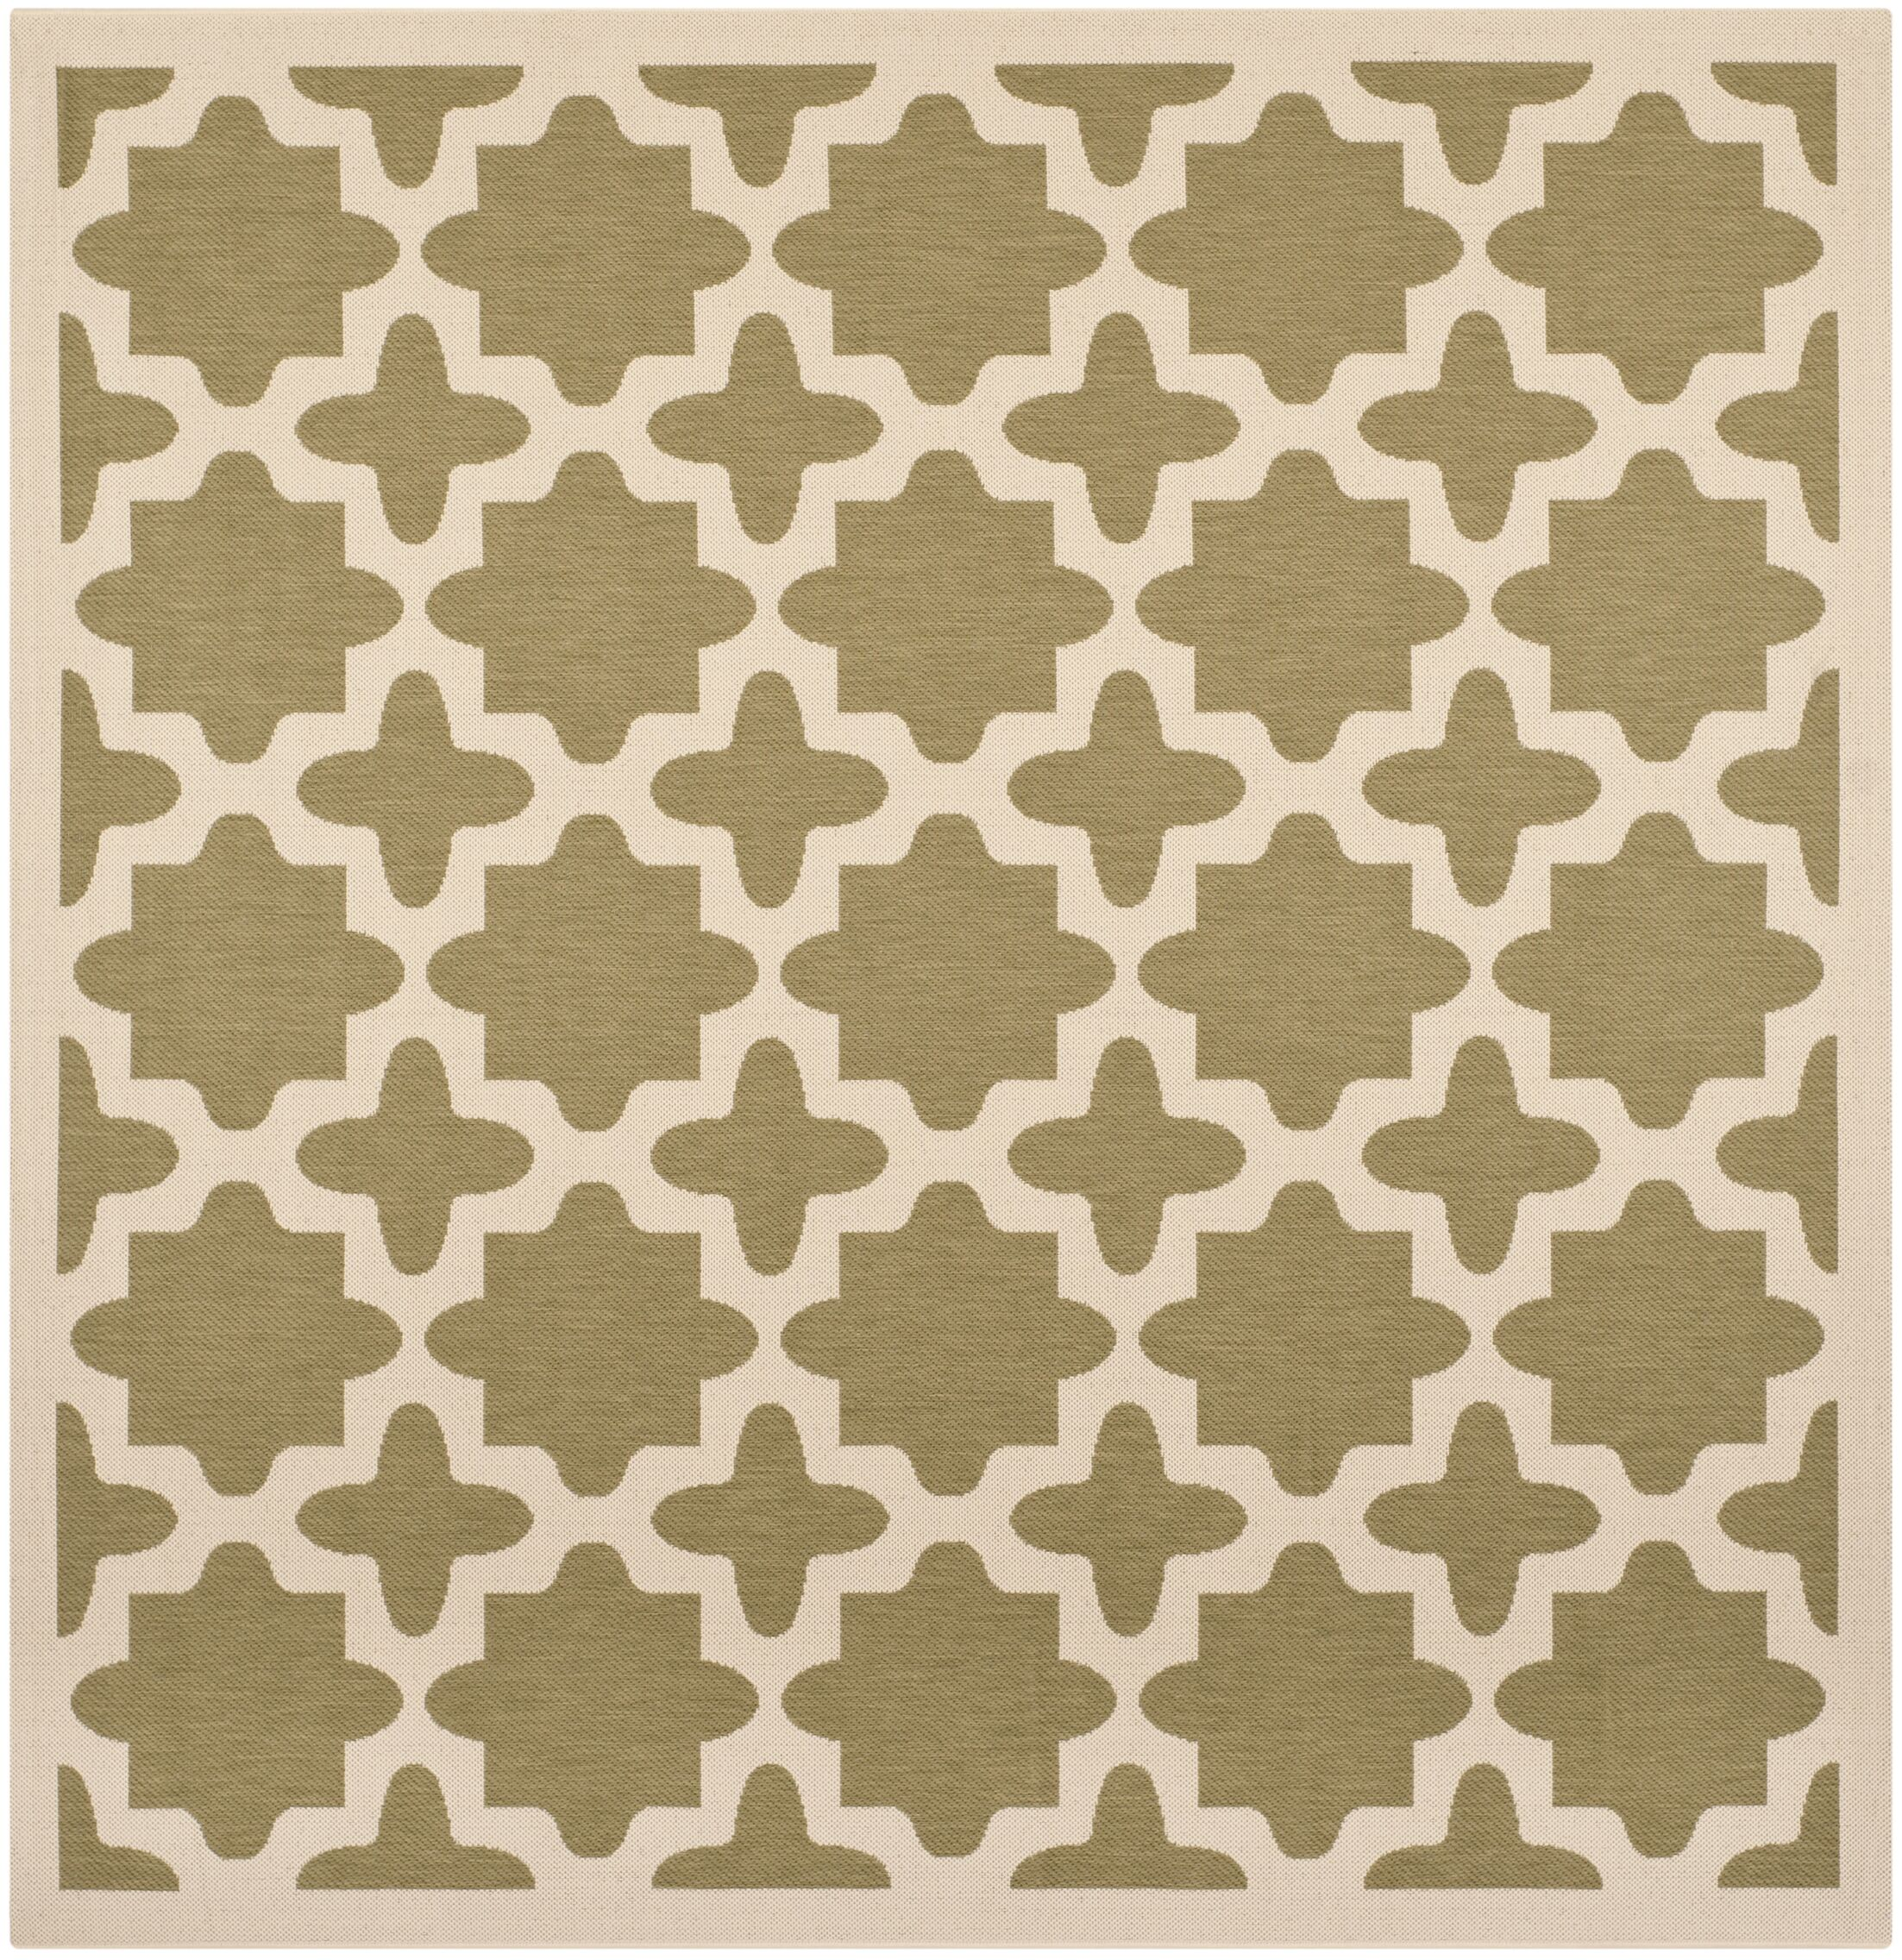 Fredricks Green/Beige Indoor/Outdoor Area Rug Rug Size: Square 7'10